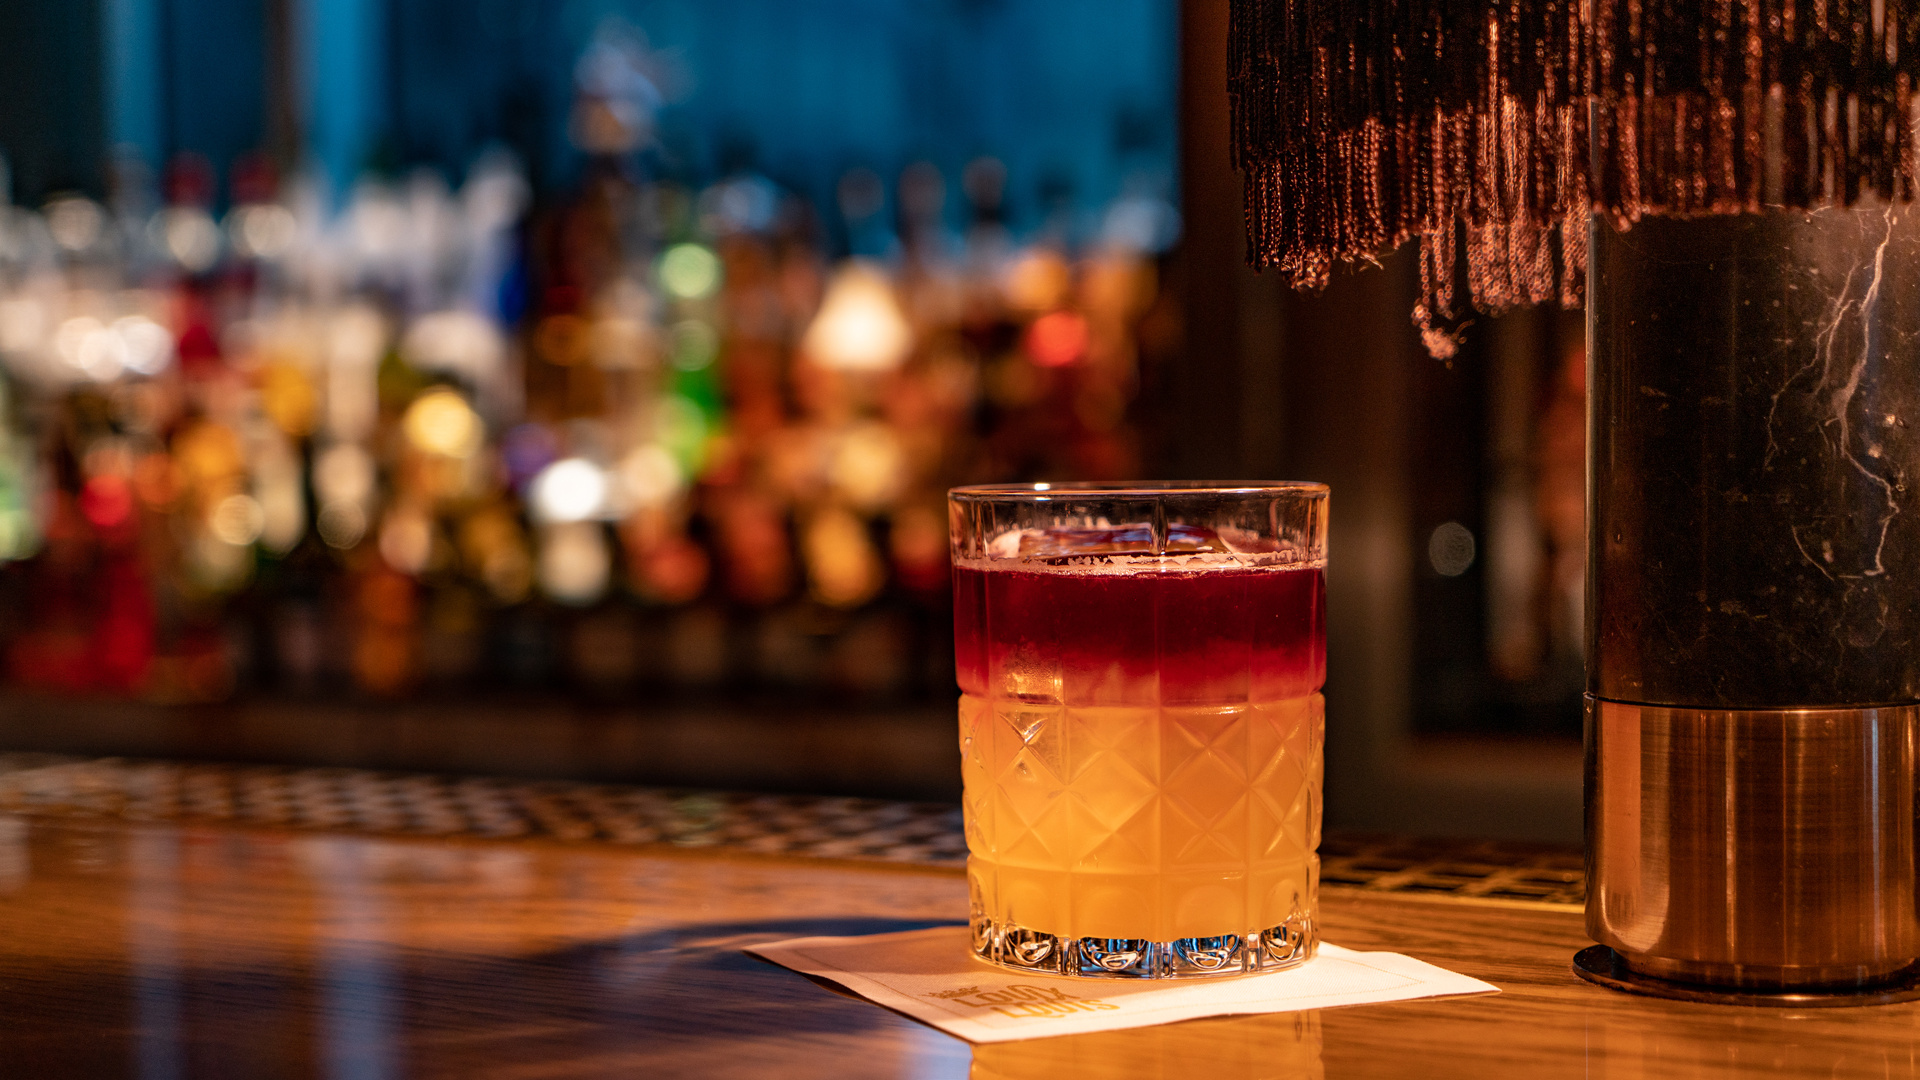 Make This Louix Louis S New York Sour Recipes Foodism To